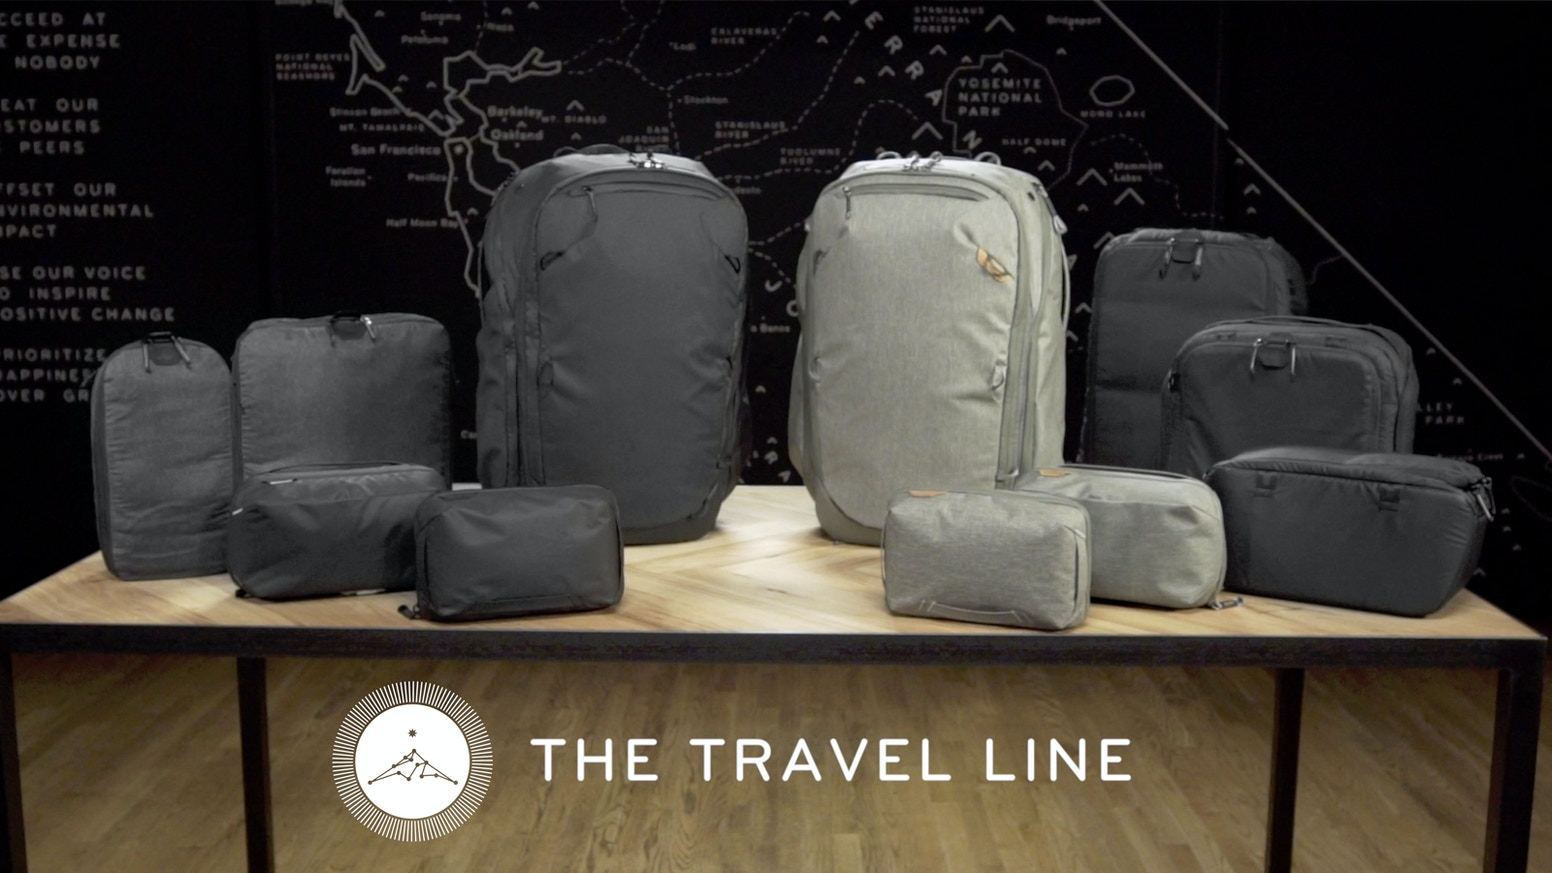 Luggage redefined: a carry-on Travel Backpack and system of Packing Tools designed around the idea that no two trips are the same.